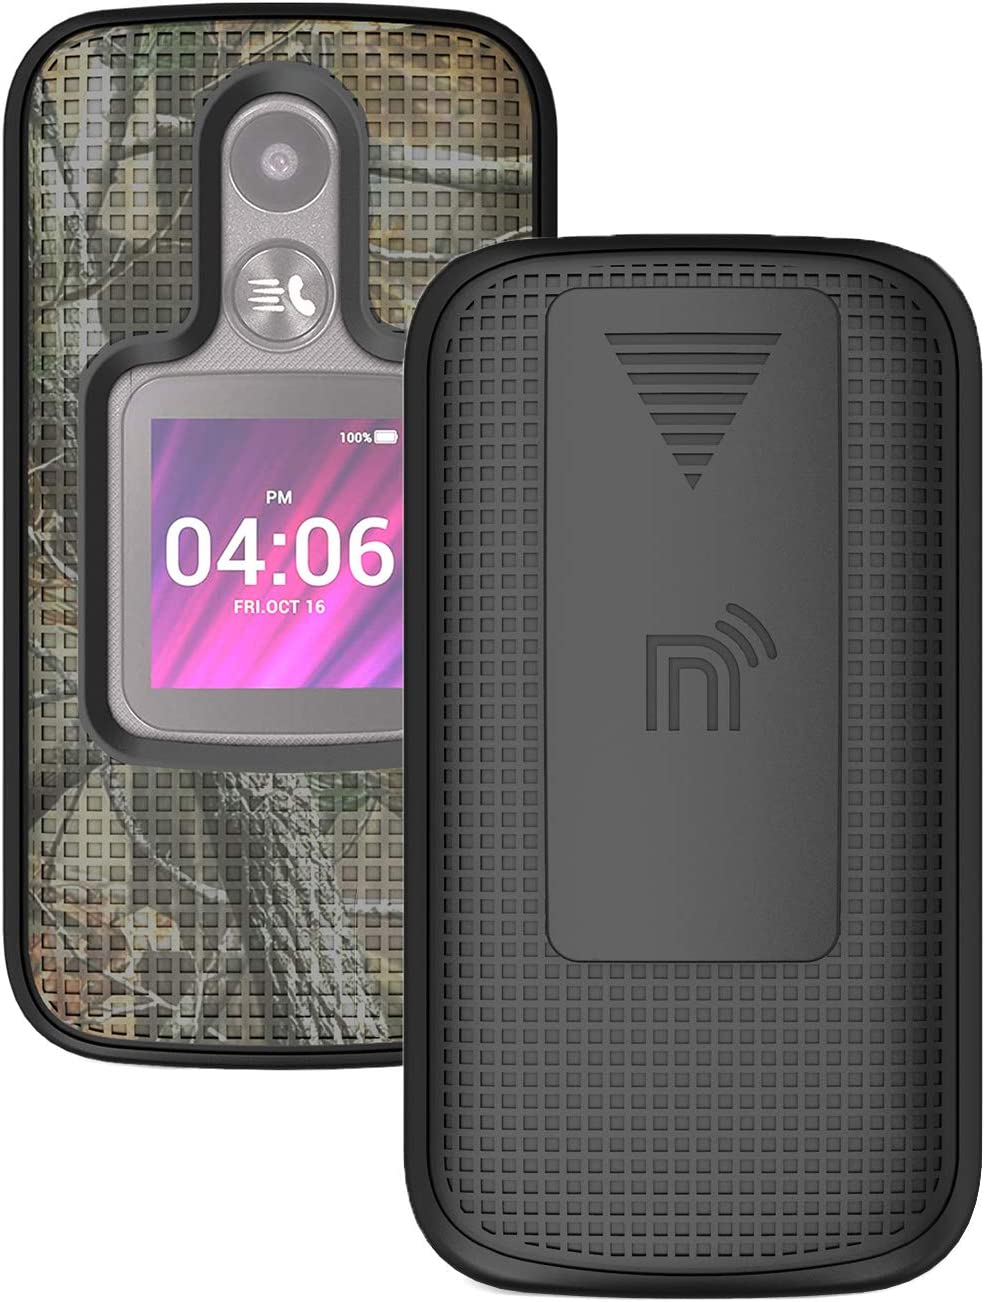 Case with Clip for MyFlip-2 Phone, Nakedcellphone [Outdoor Camouflage] Tree Leaf Real Woods Camo Cover with Belt Hip Holster Holder for Alcatel MyFlip 2 Phone (A406DL), TCL My Flip 2